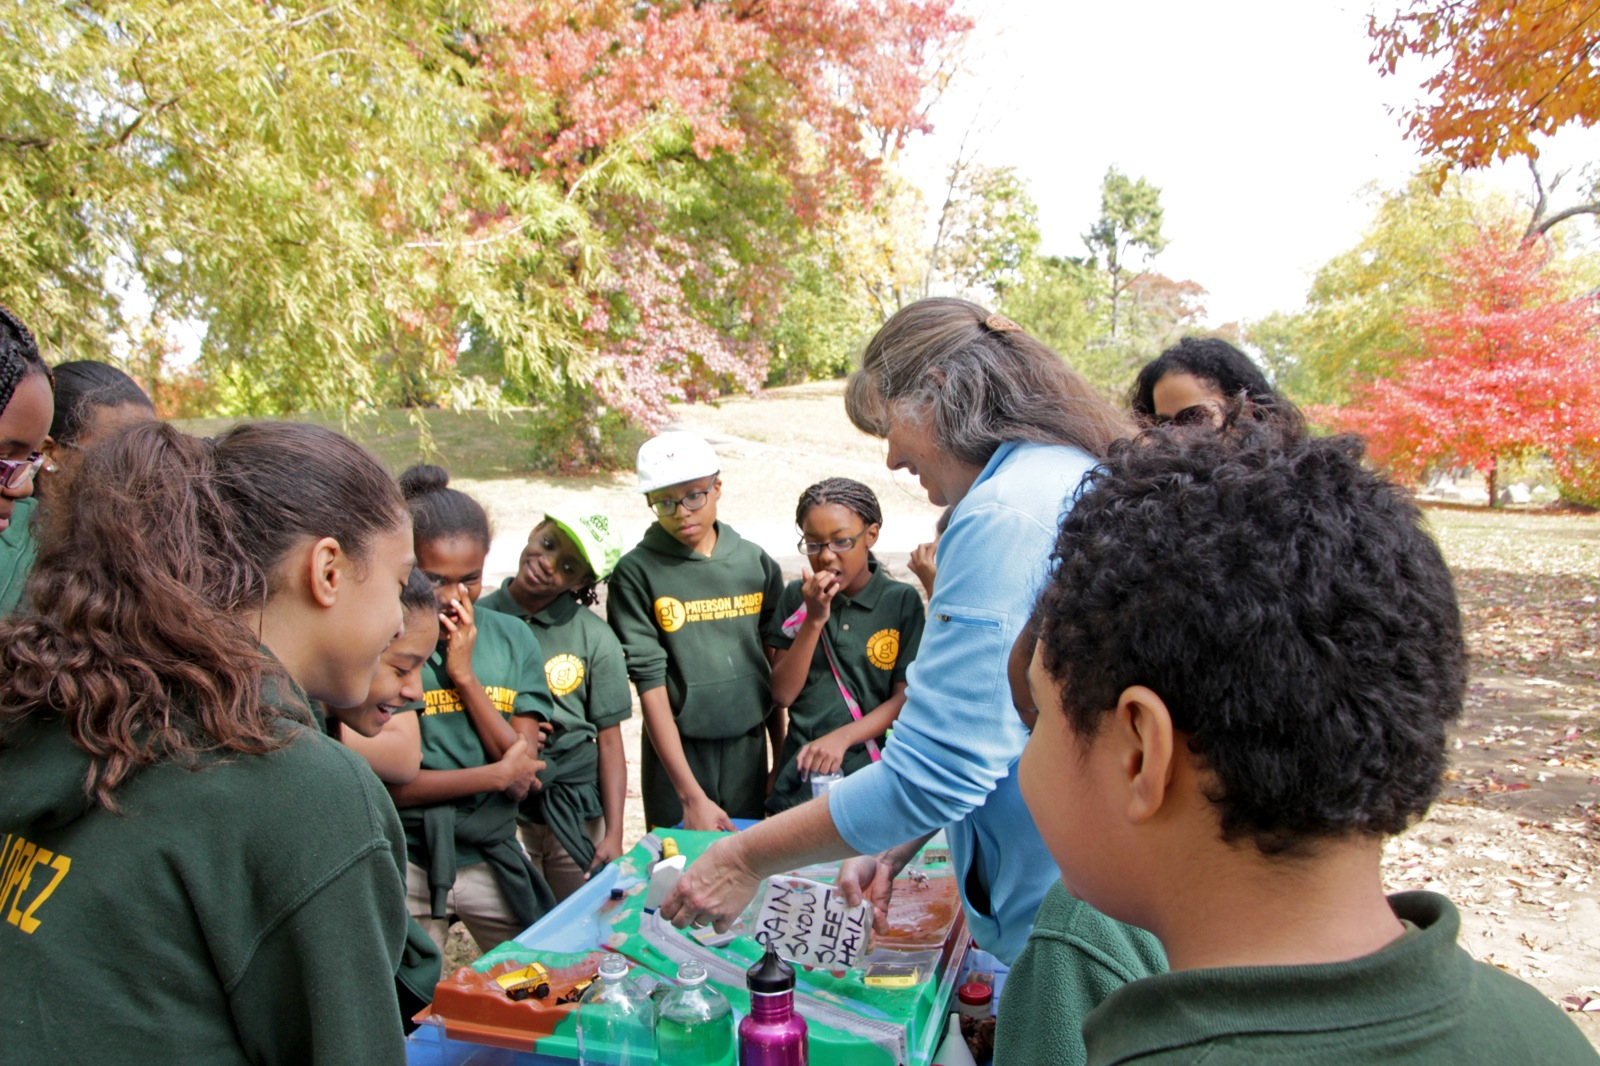 a group of youth learn about water quality in the fall